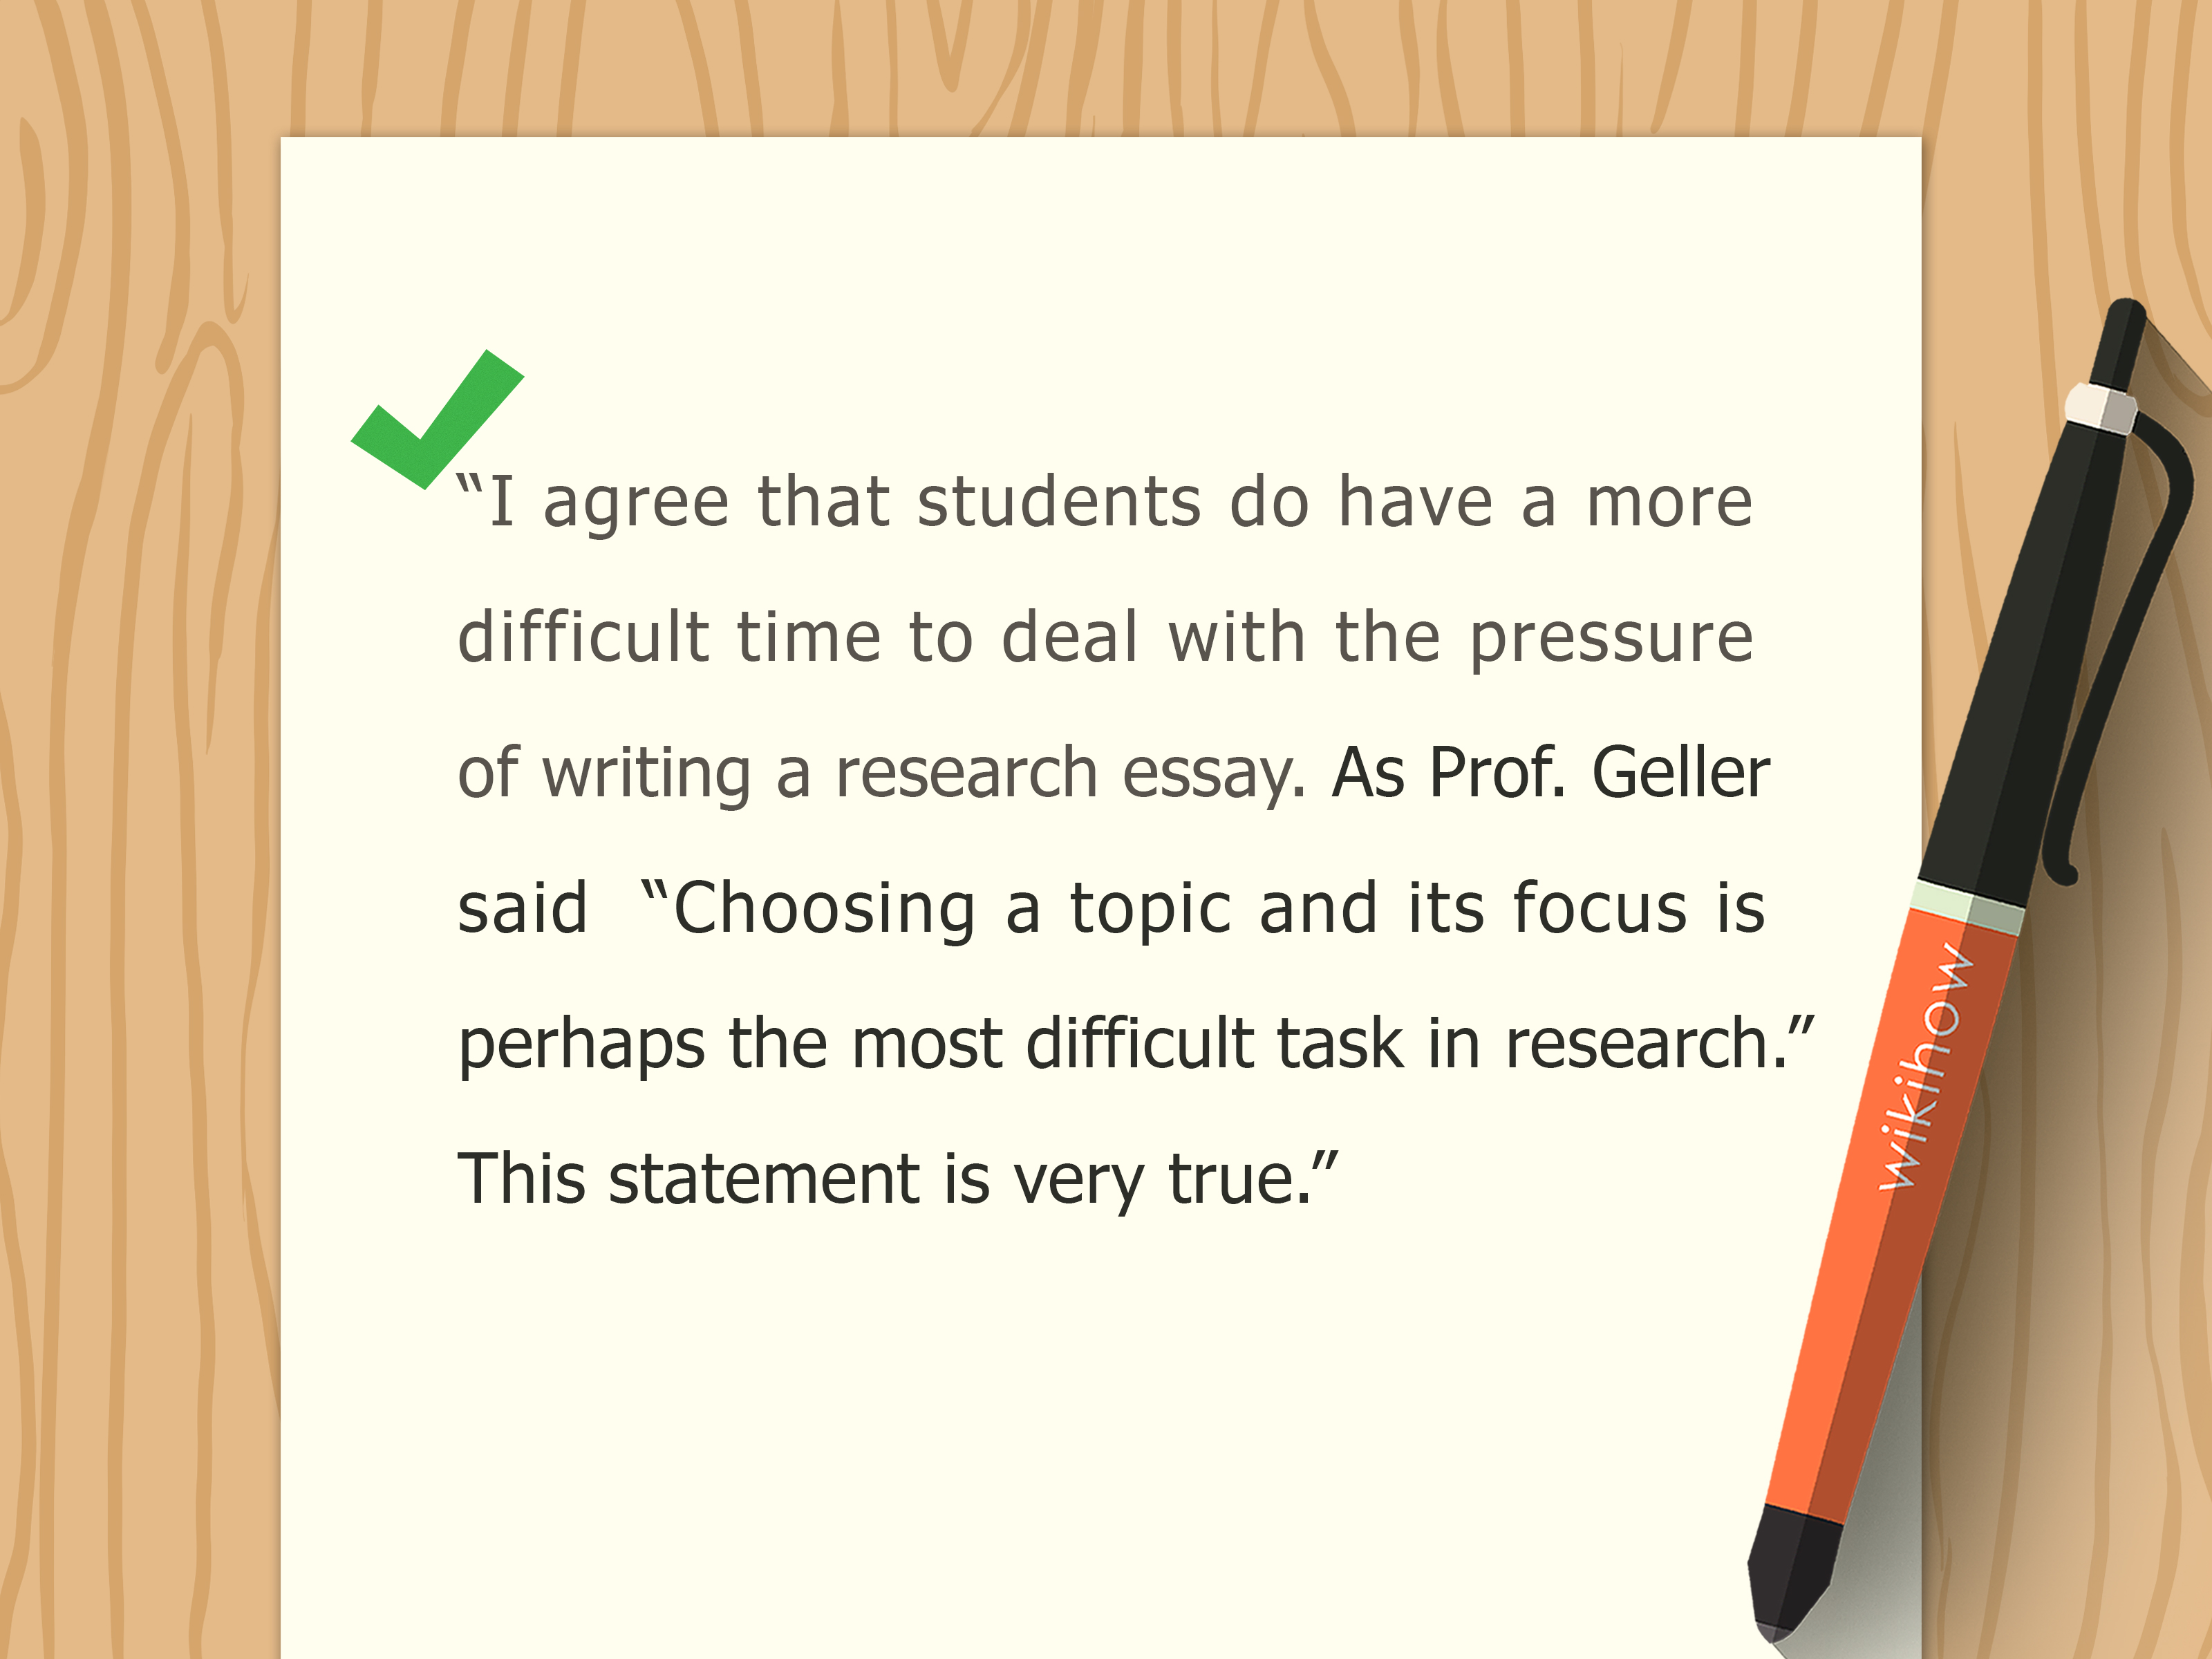 011 College Level Essay Example How To Write Reflection Paper Wikihow Do You Step Vers Steps Of Outline Best Way Introduction Tips For Exceptional Persuasive Examples Argumentative Topics Full